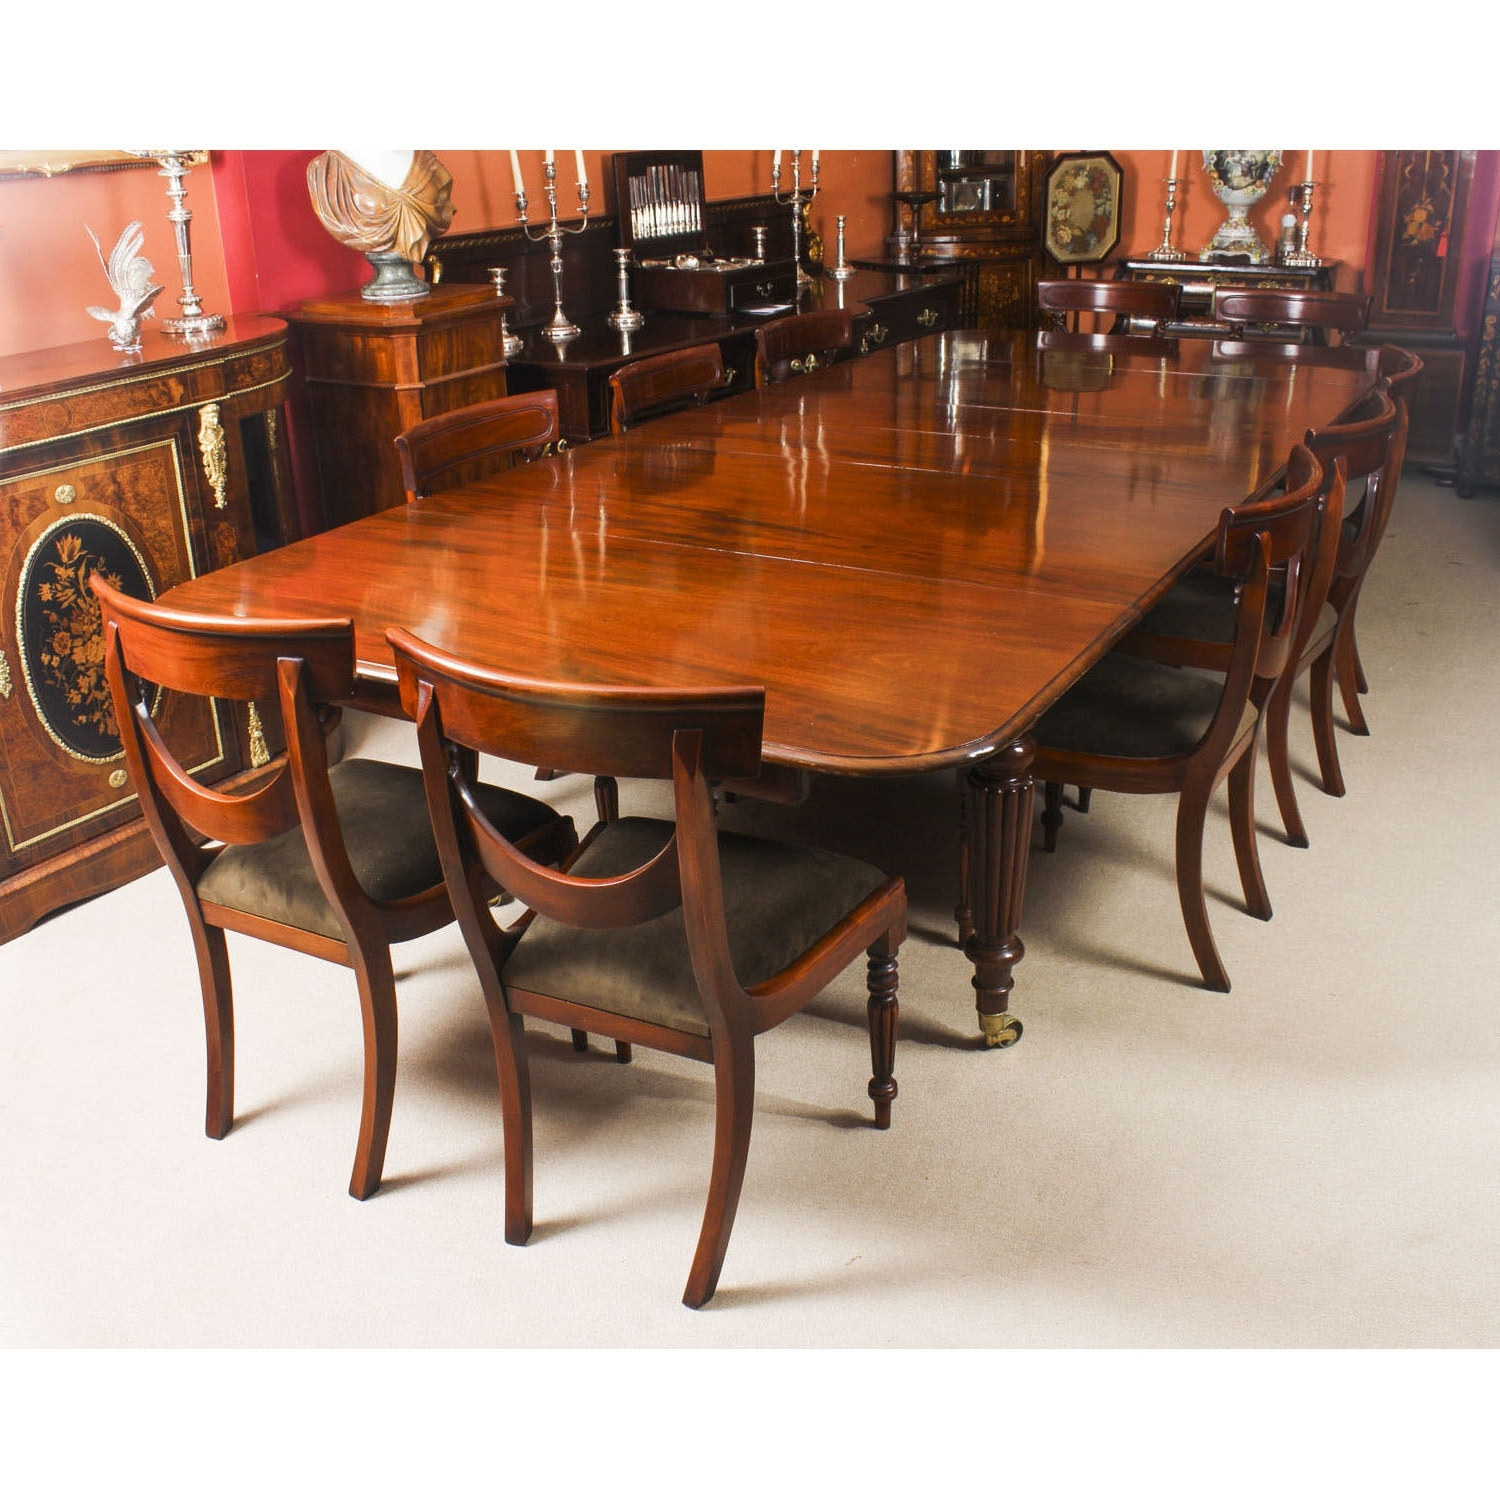 Antique 11 Ft Flame Mahogany Extending Dining Table 19Th Century Inside Most Current Mahogany Extending Dining Tables (View 2 of 25)